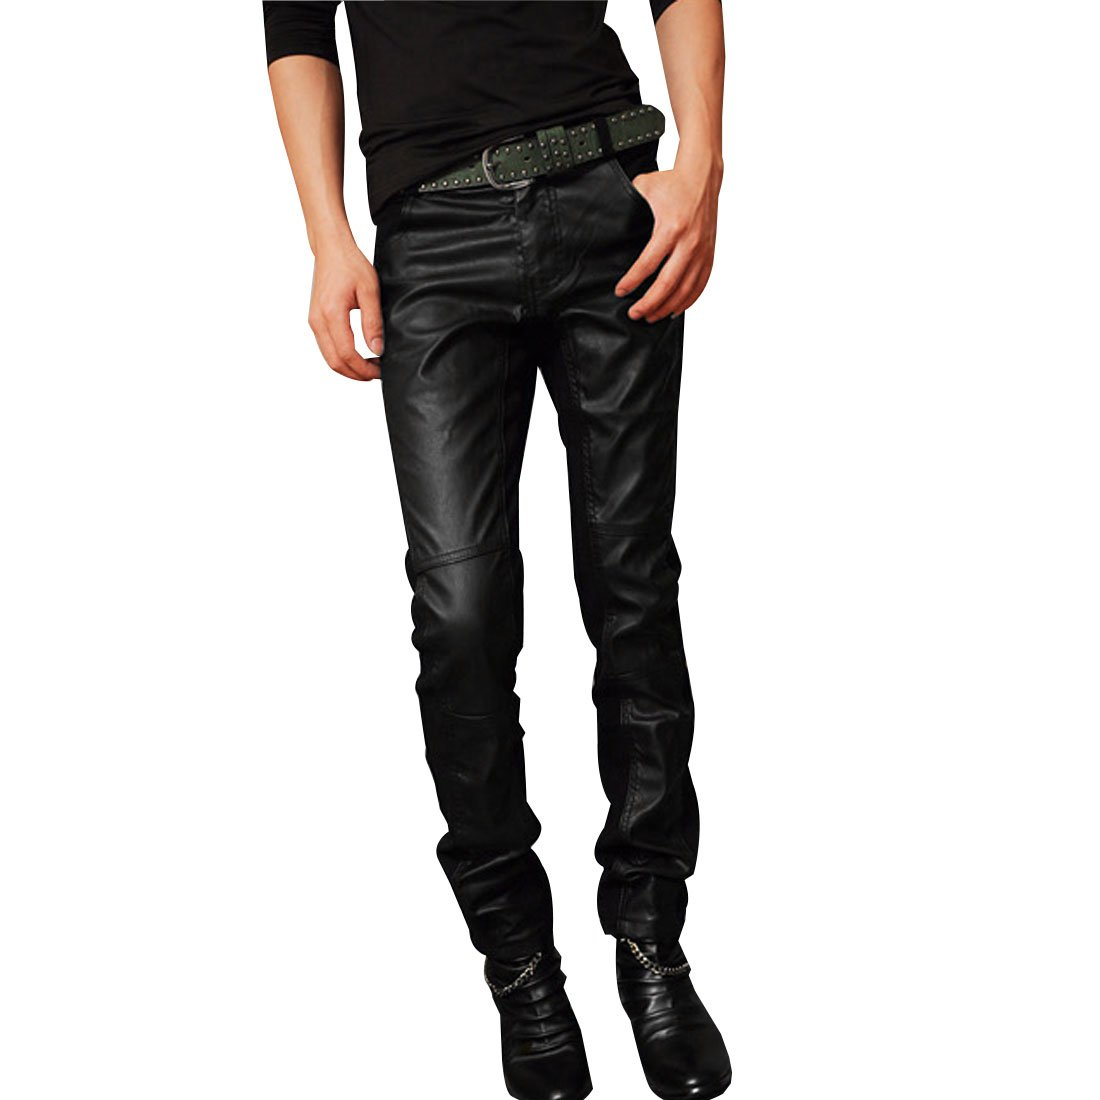 Mens Leather Pants Leather Pants Men by Admin